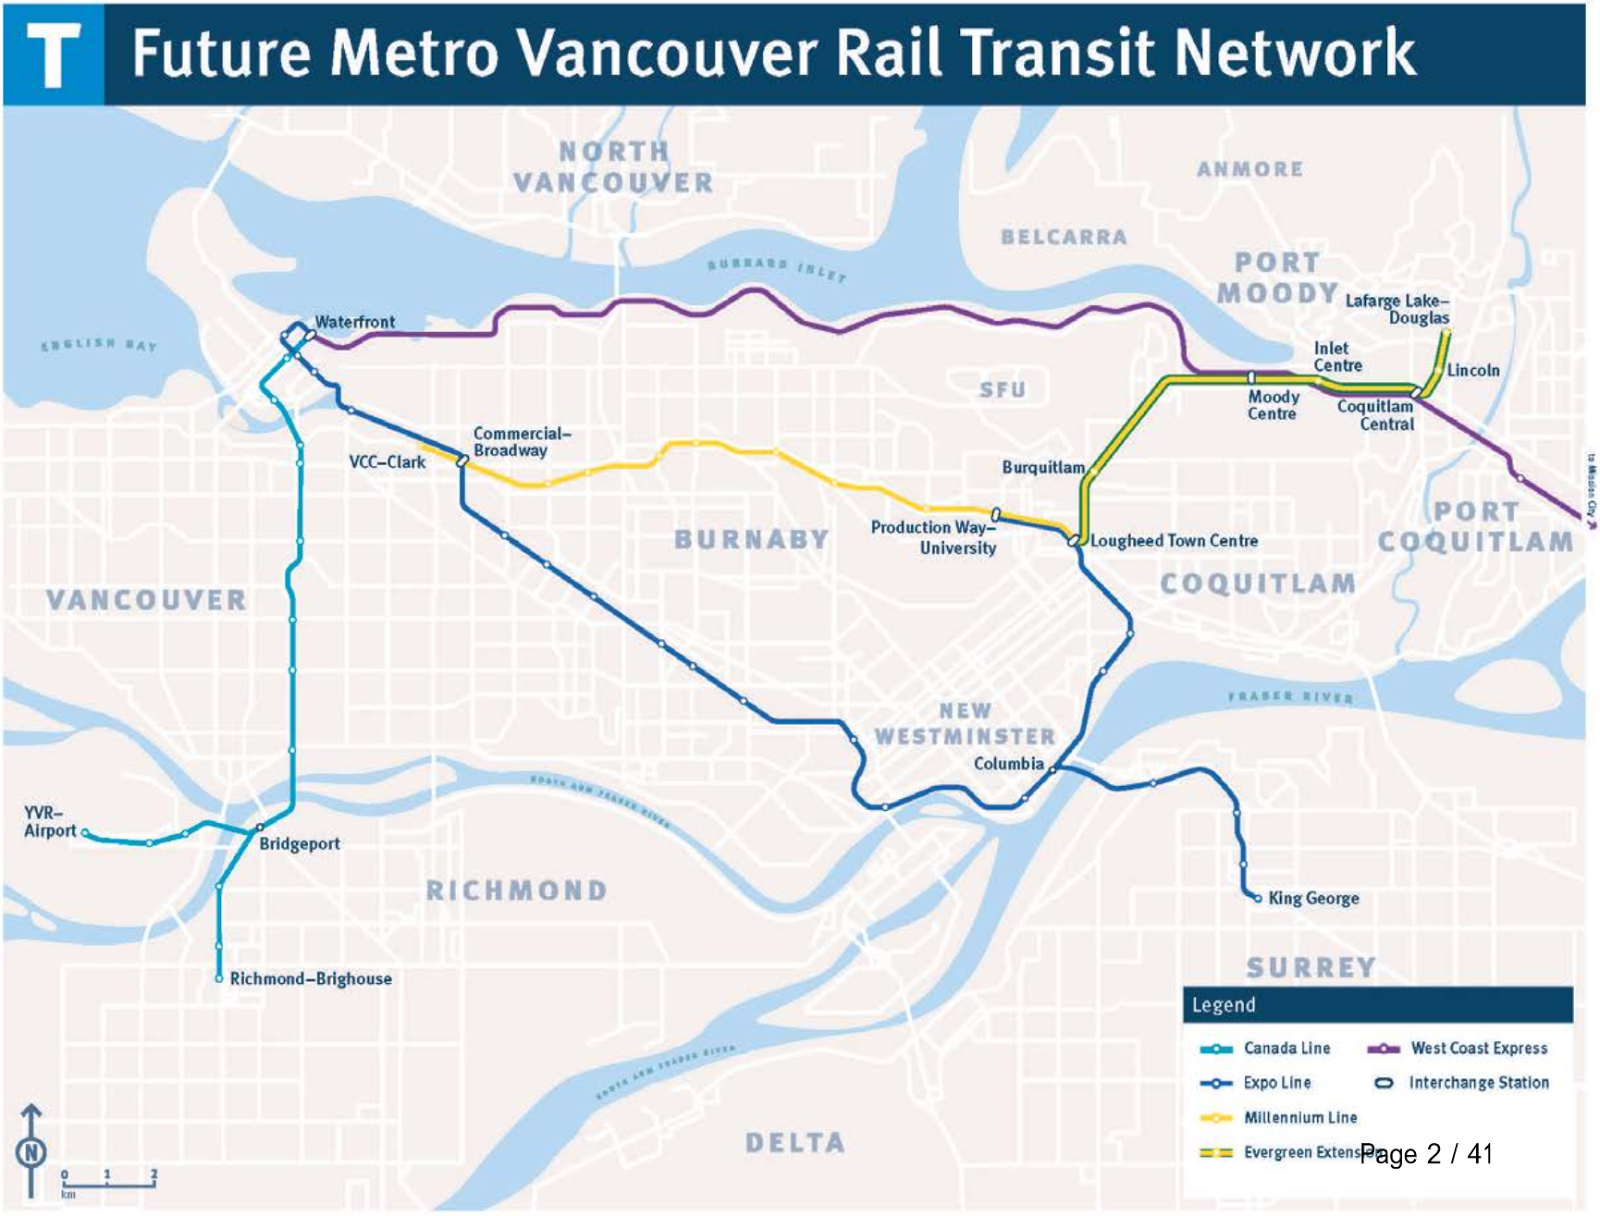 The South Fraser Blog: Future SkyTrain Map Released on piccadilly line map, c-train map, evergreen line, dubai metro, union map, public transport, washington metro, airport map, sunderland map, transit map, north shore mountains map, translink map, sfu map, canada line, polson mt map, bay area rapid transit, chinatown map, chao phraya river map, shanghai metro, marc train map, bc ferries map, s-bahn map, massachusetts bay transportation authority map, light rail, victoria map, university of british columbia map, mexico city metro, west coast express, trimet map, rapid transit, beijing subway, expo line, people mover, car map, montreal metro,